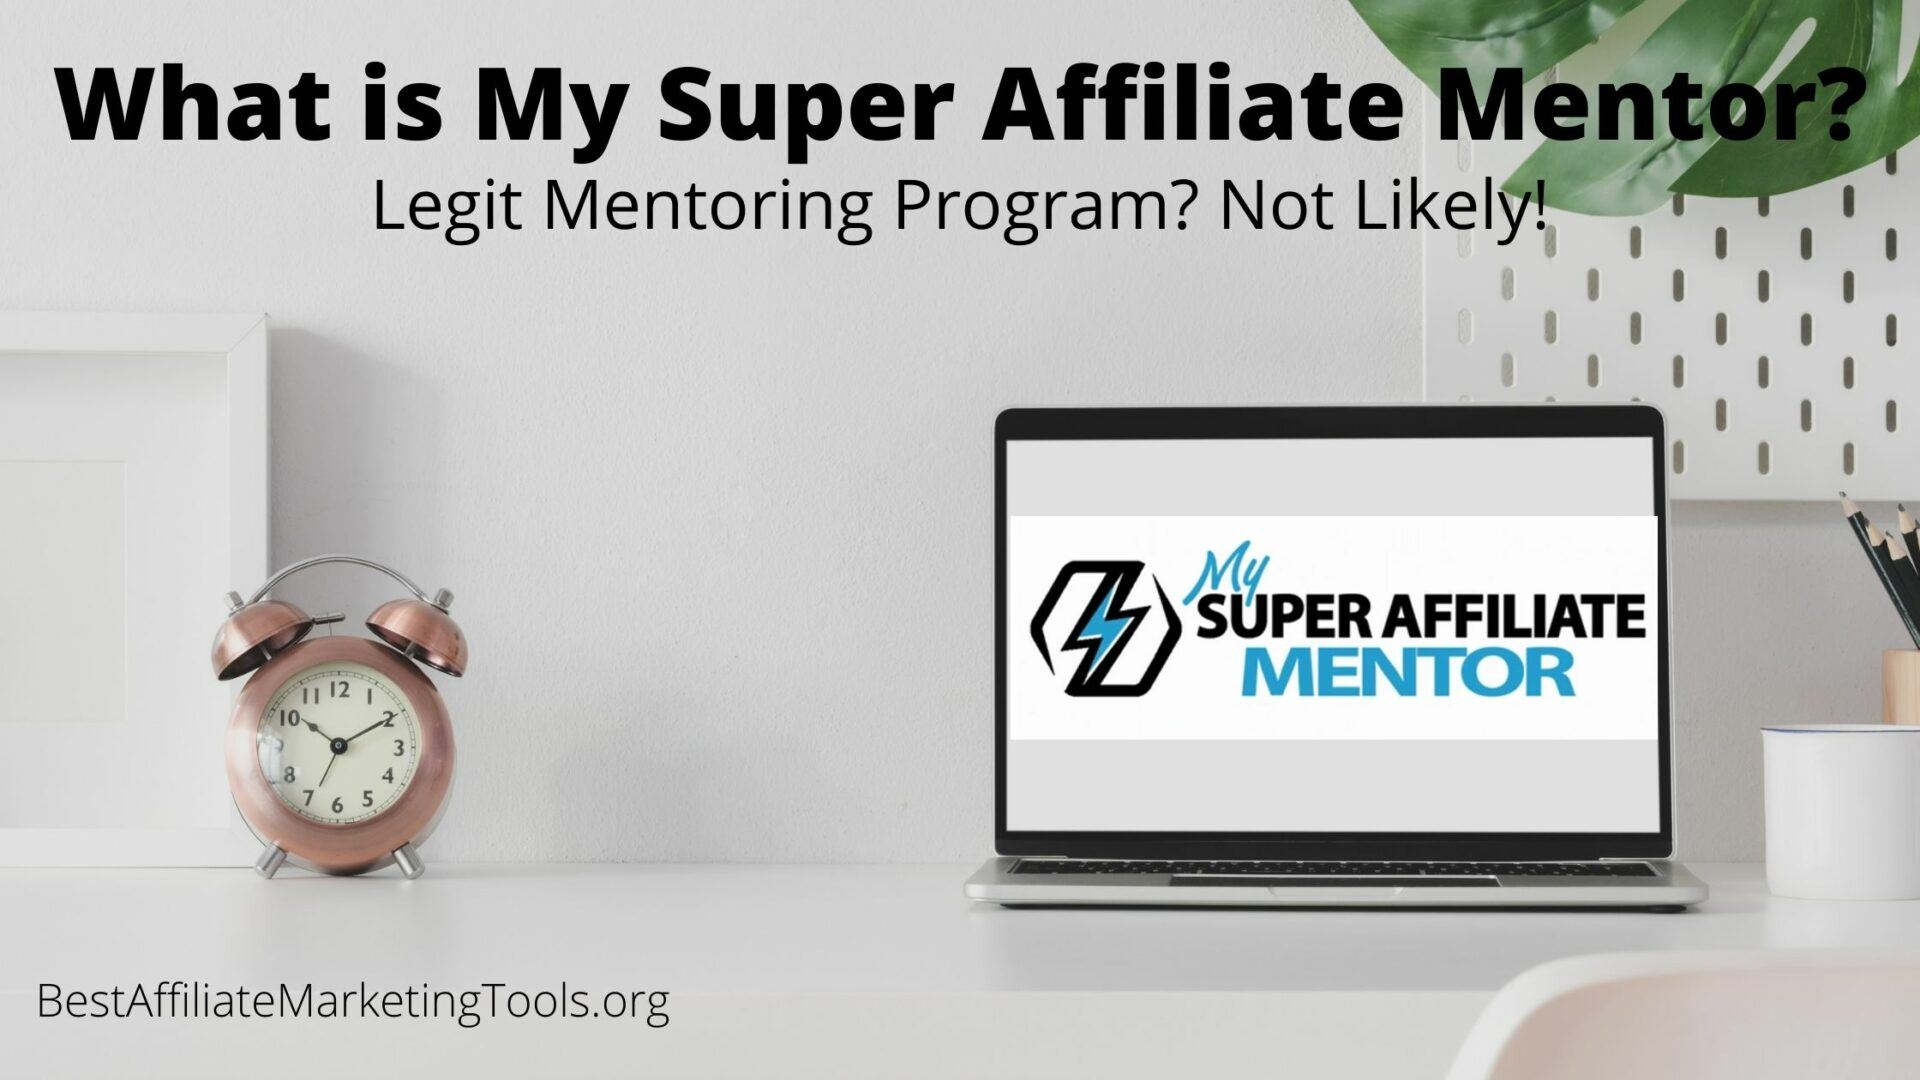 What is My Super Affiliate Mentor